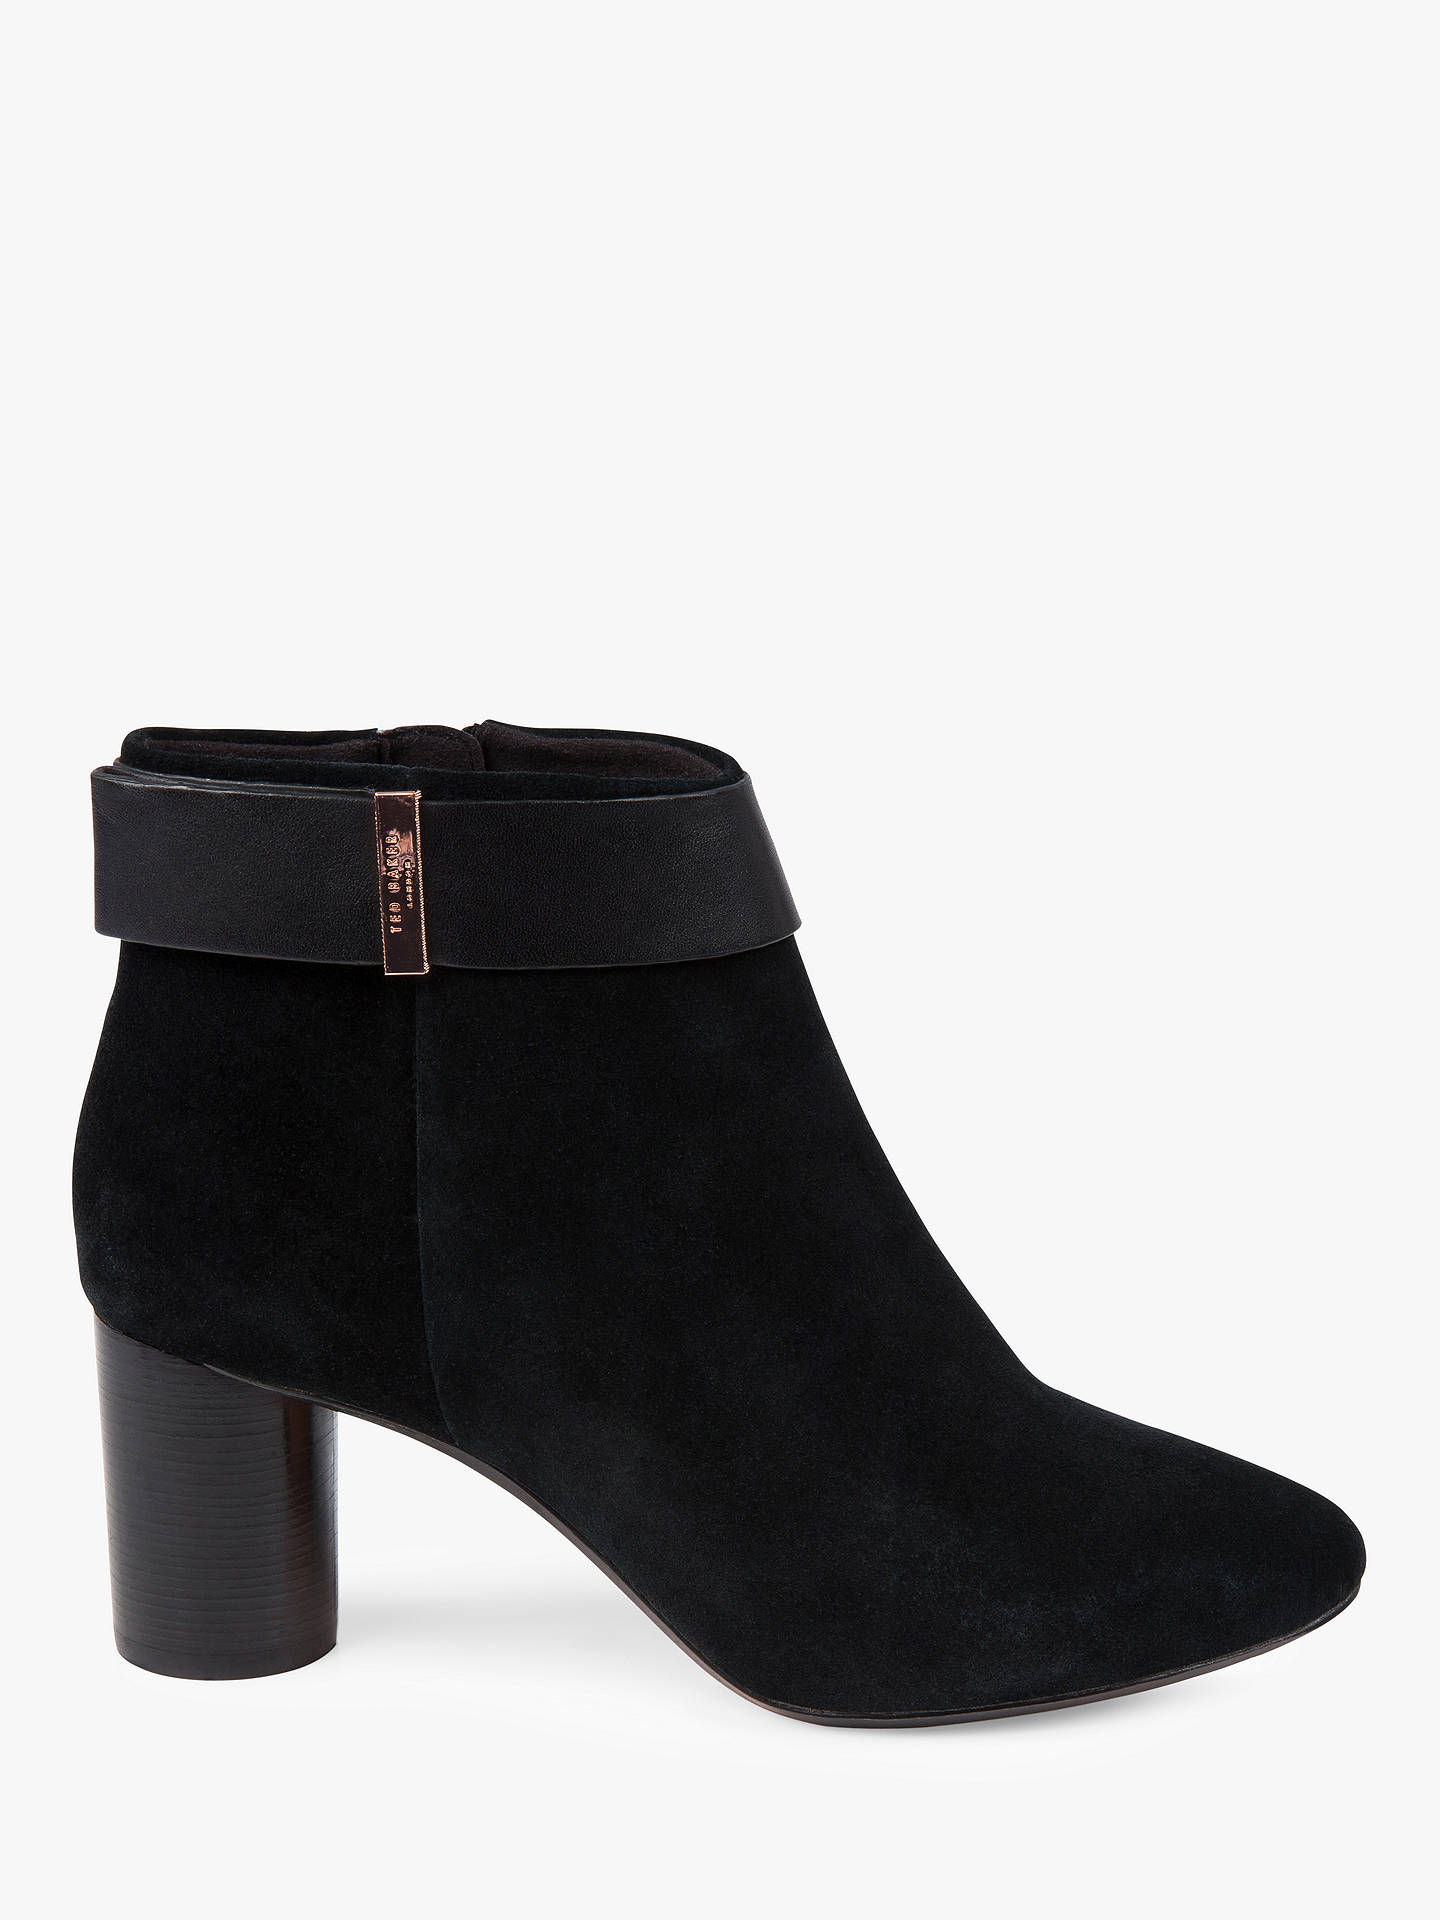 600217c2a2b Ted Baker Mharia Suede Block Heel Ankle Boots at John Lewis & Partners